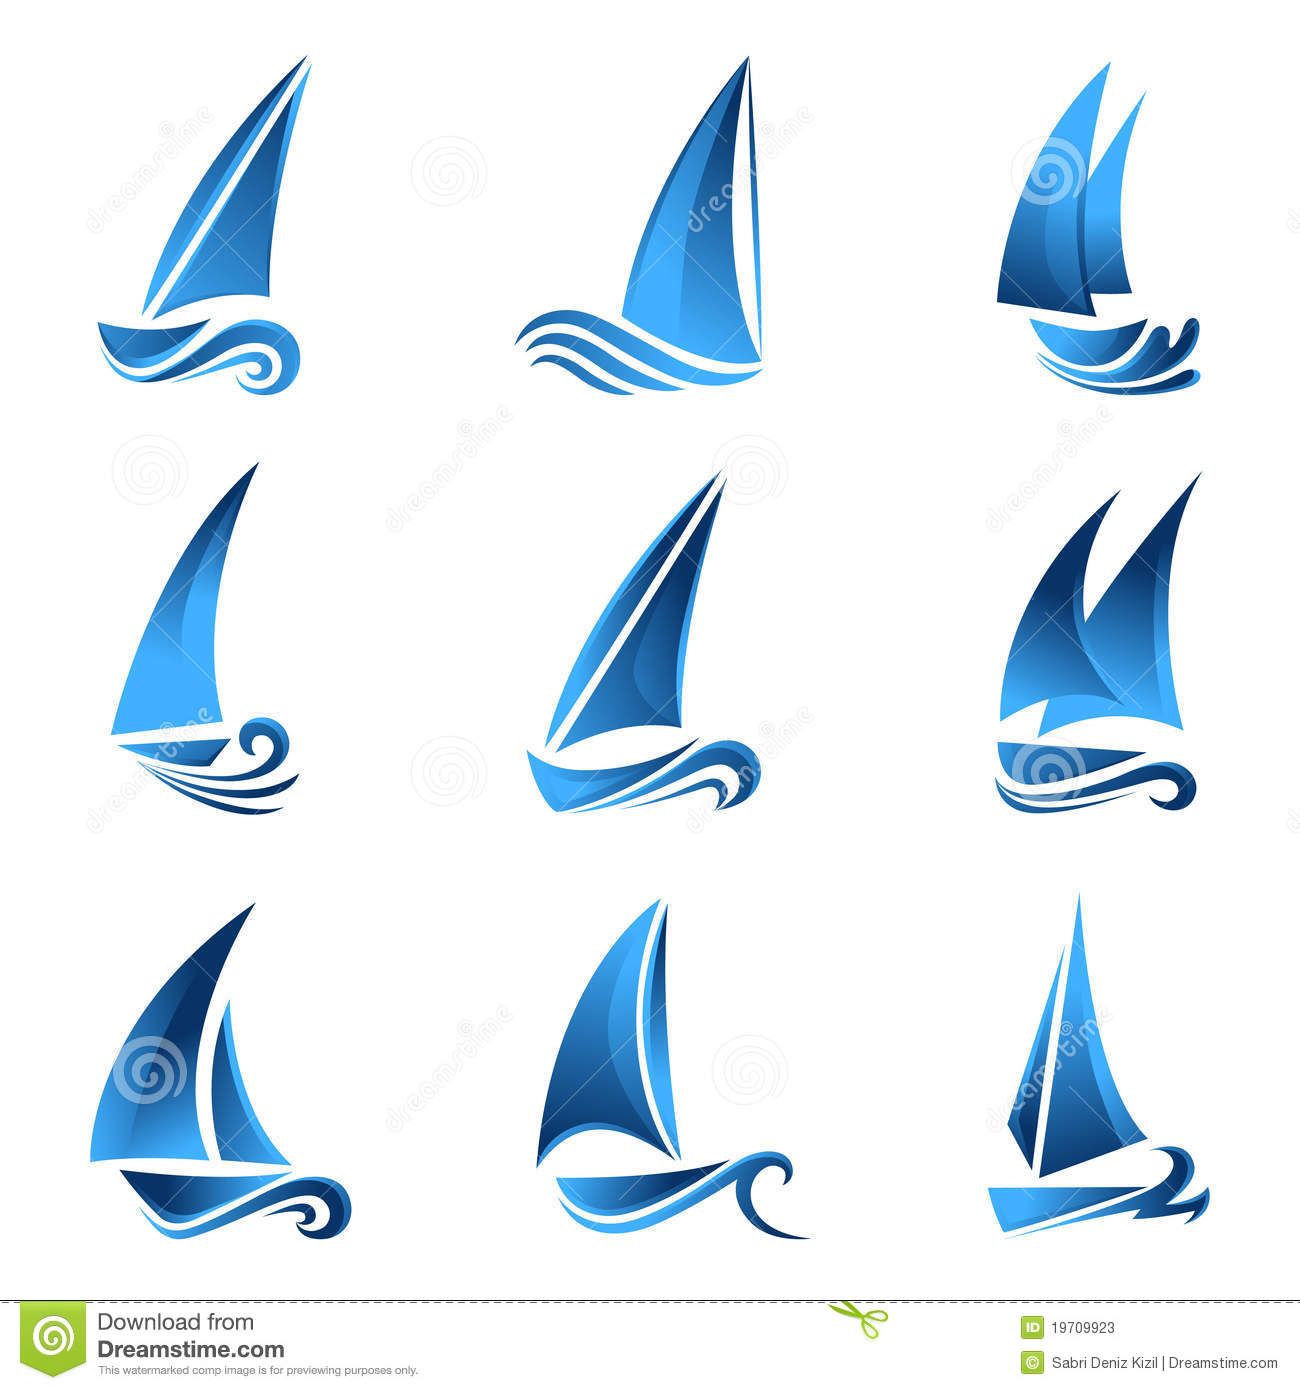 Sailboat symbol stock vector. Illustration of wind ...